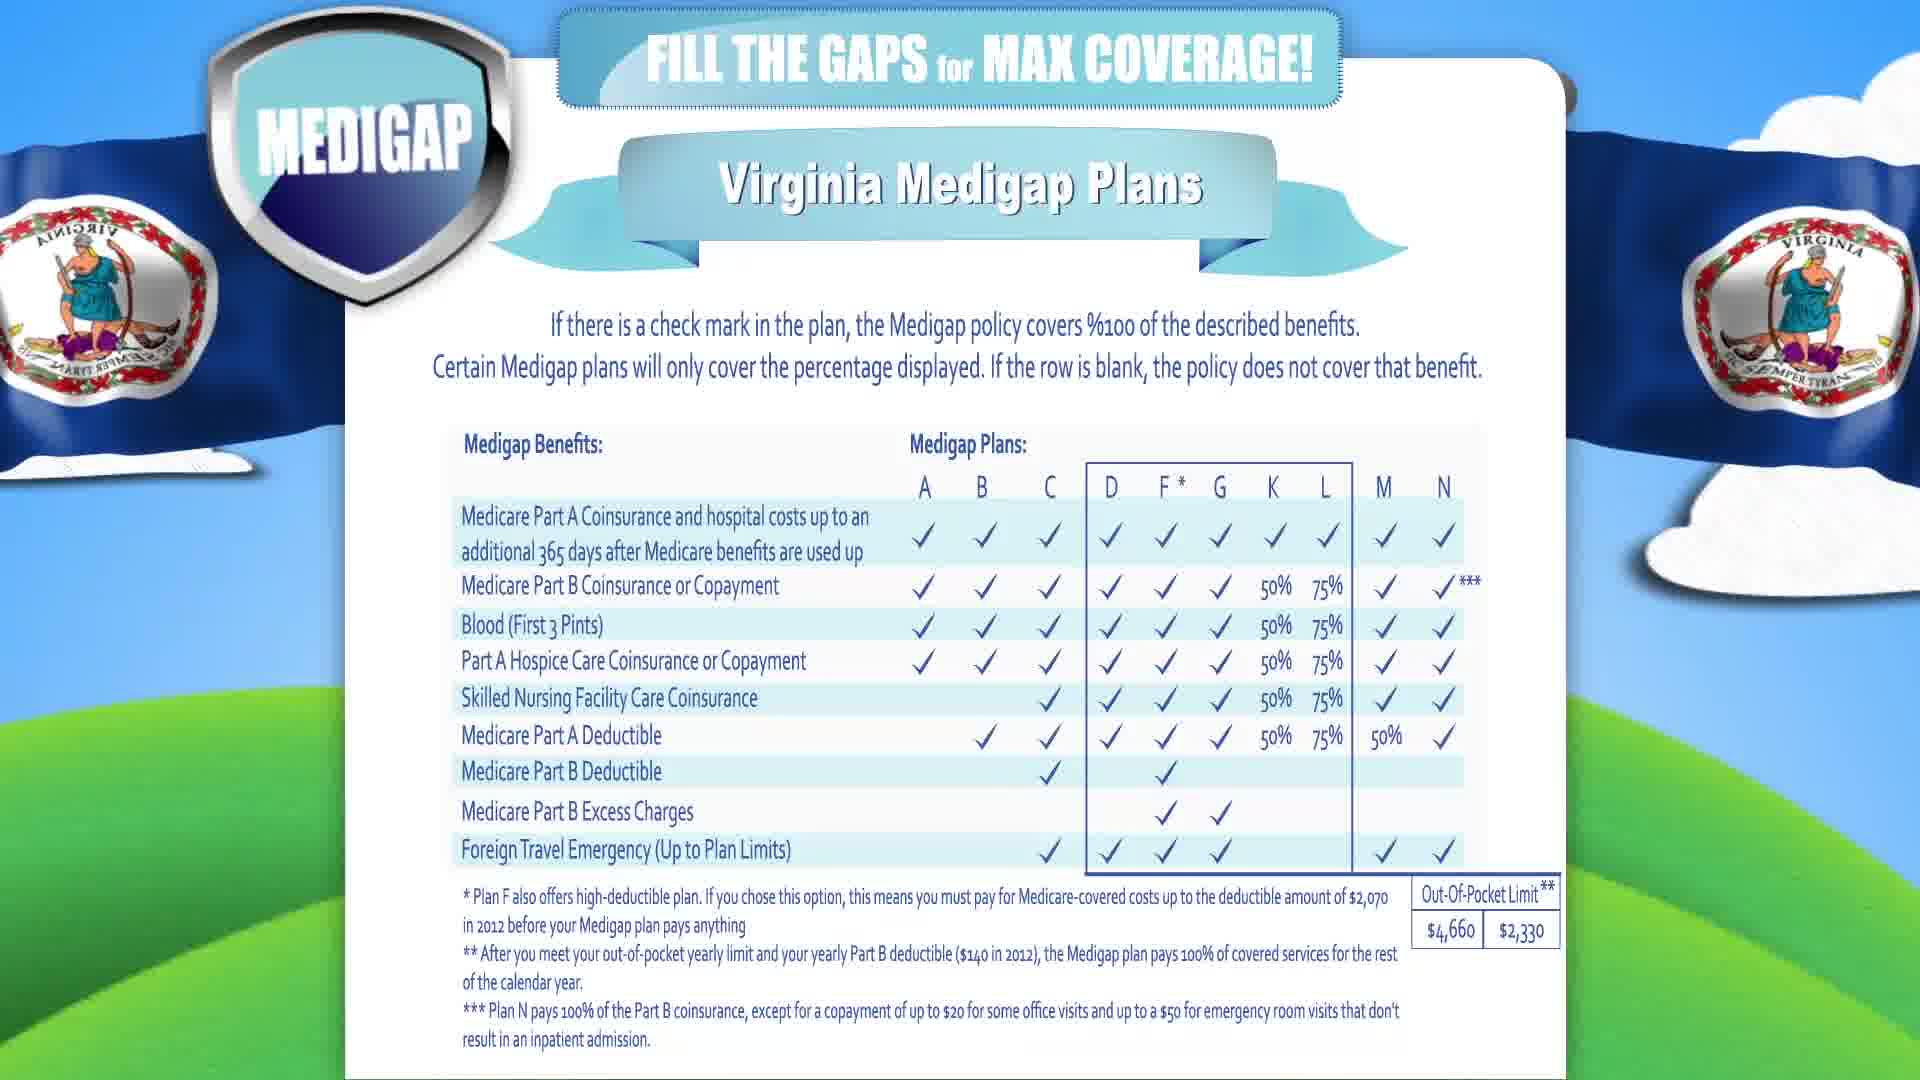 Medicare in Virginia